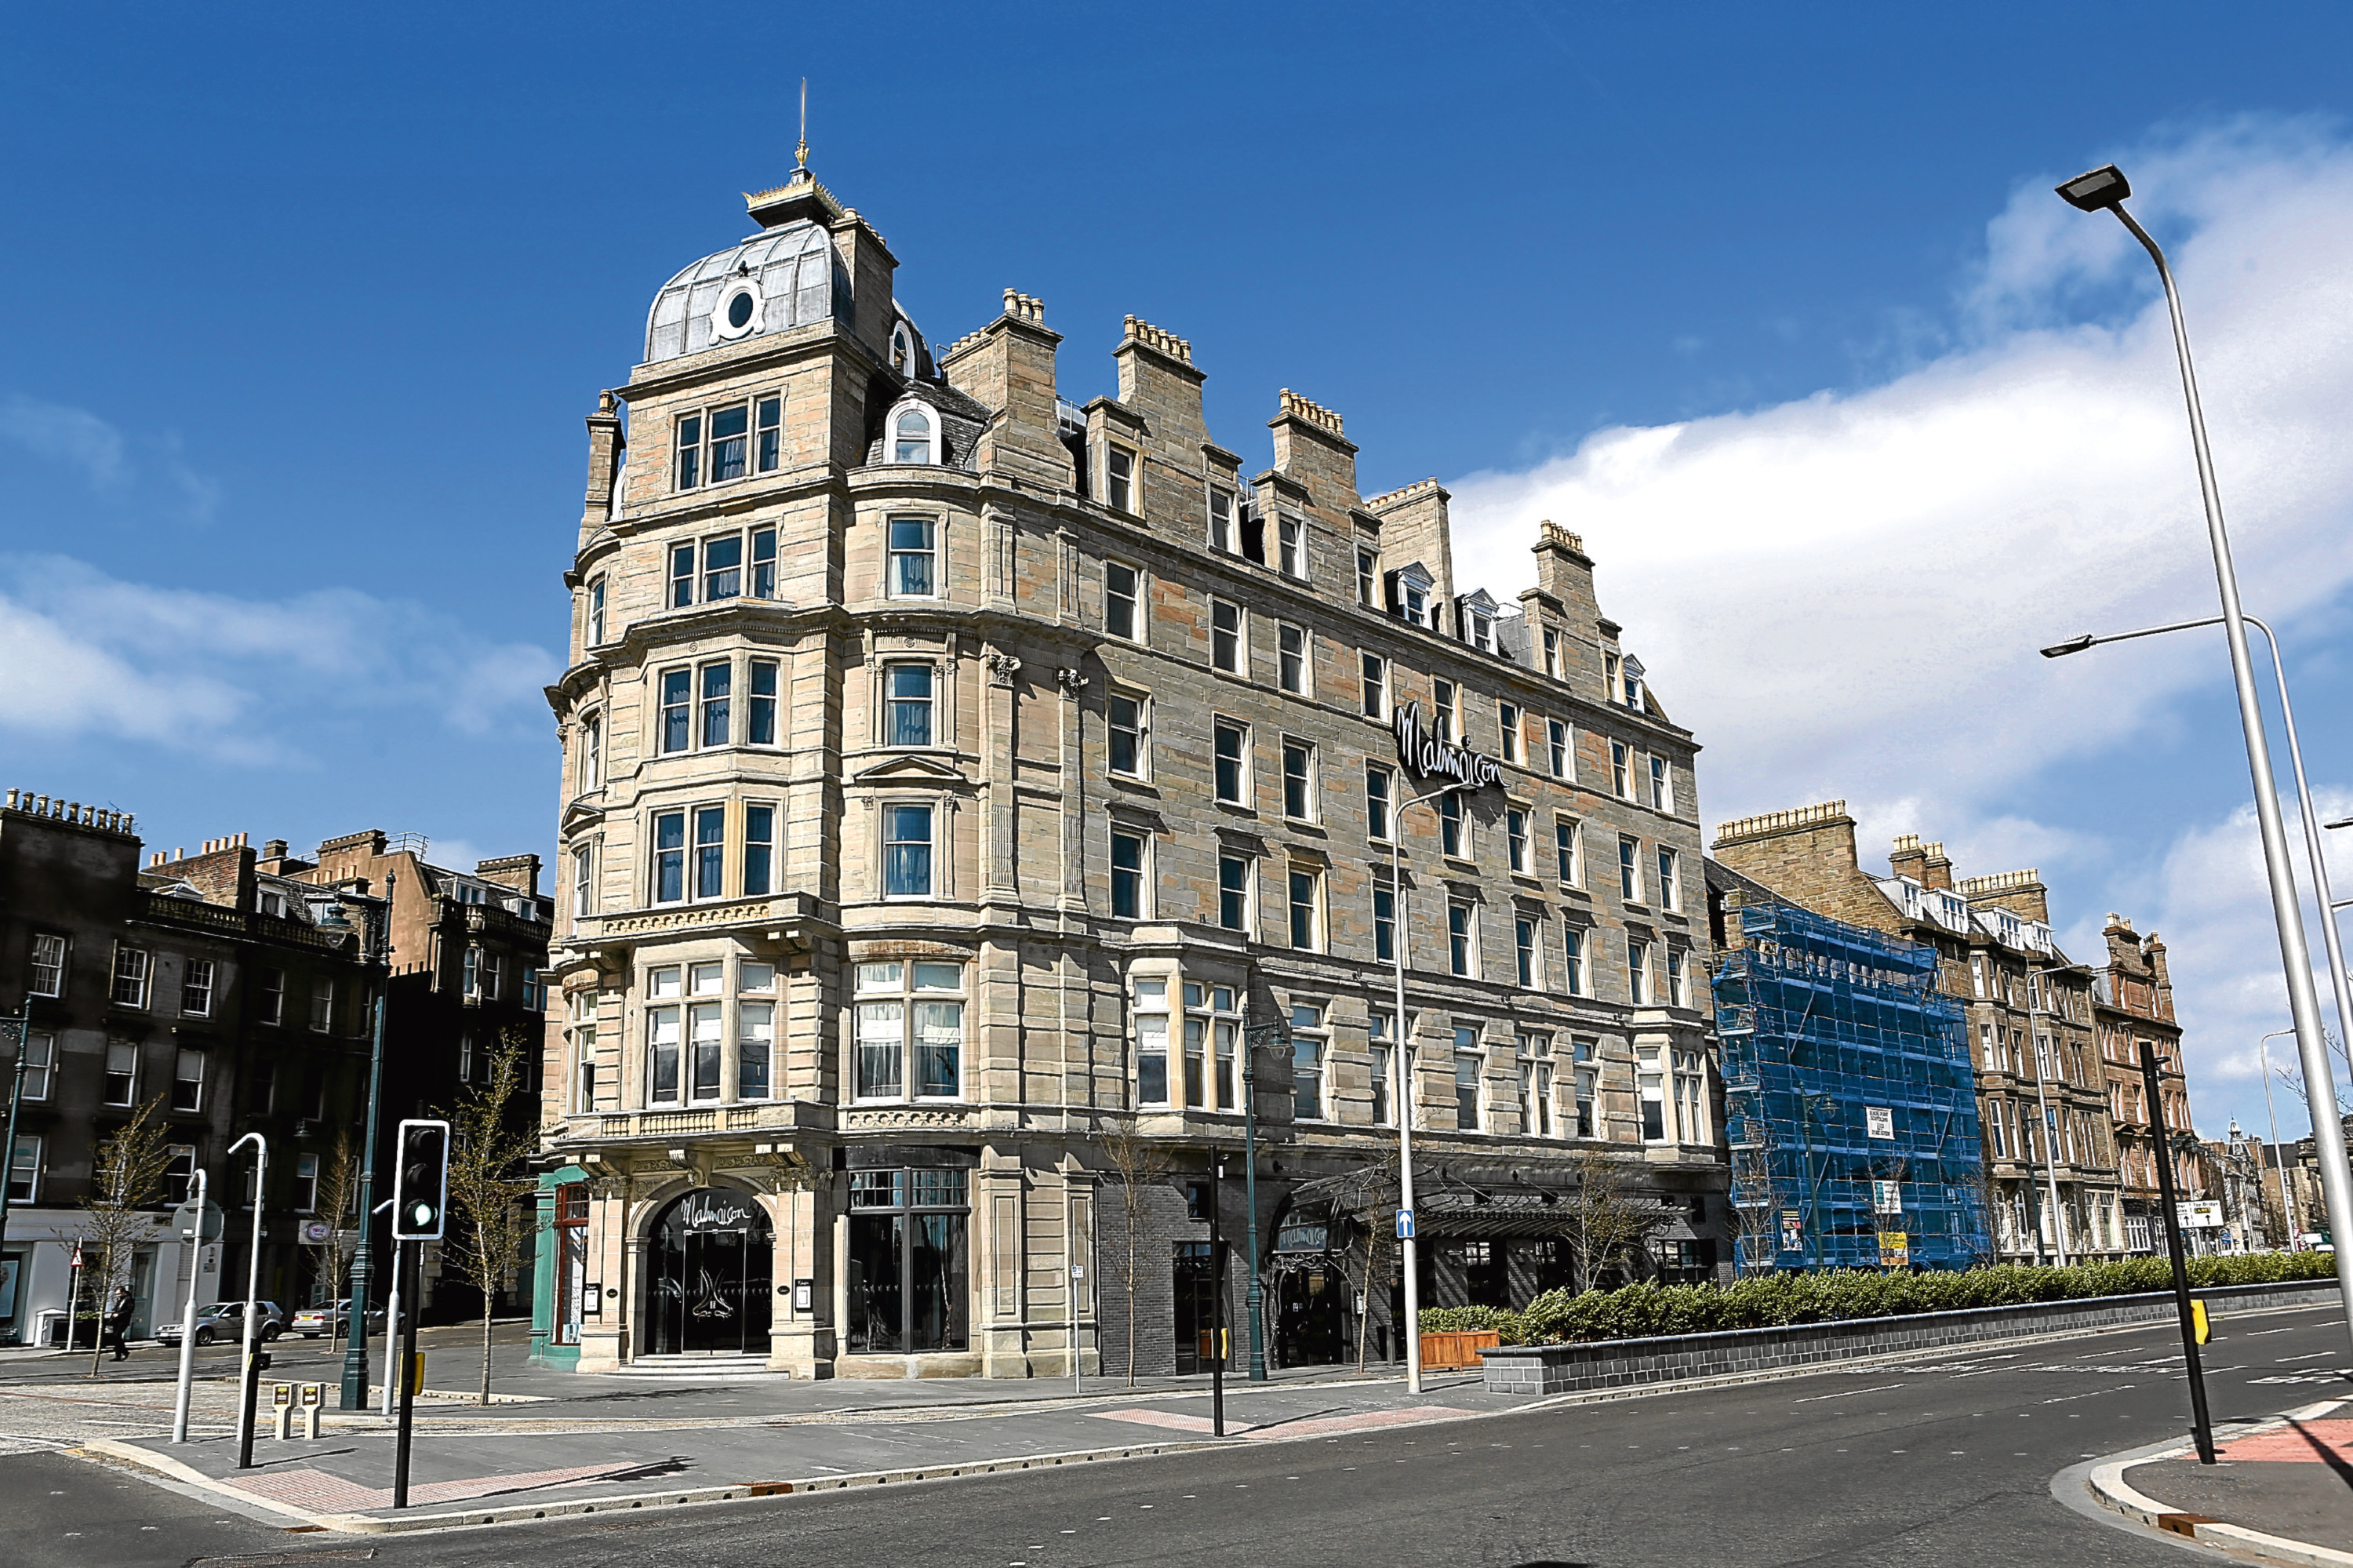 The event will take place at the Malmaison in Dundee